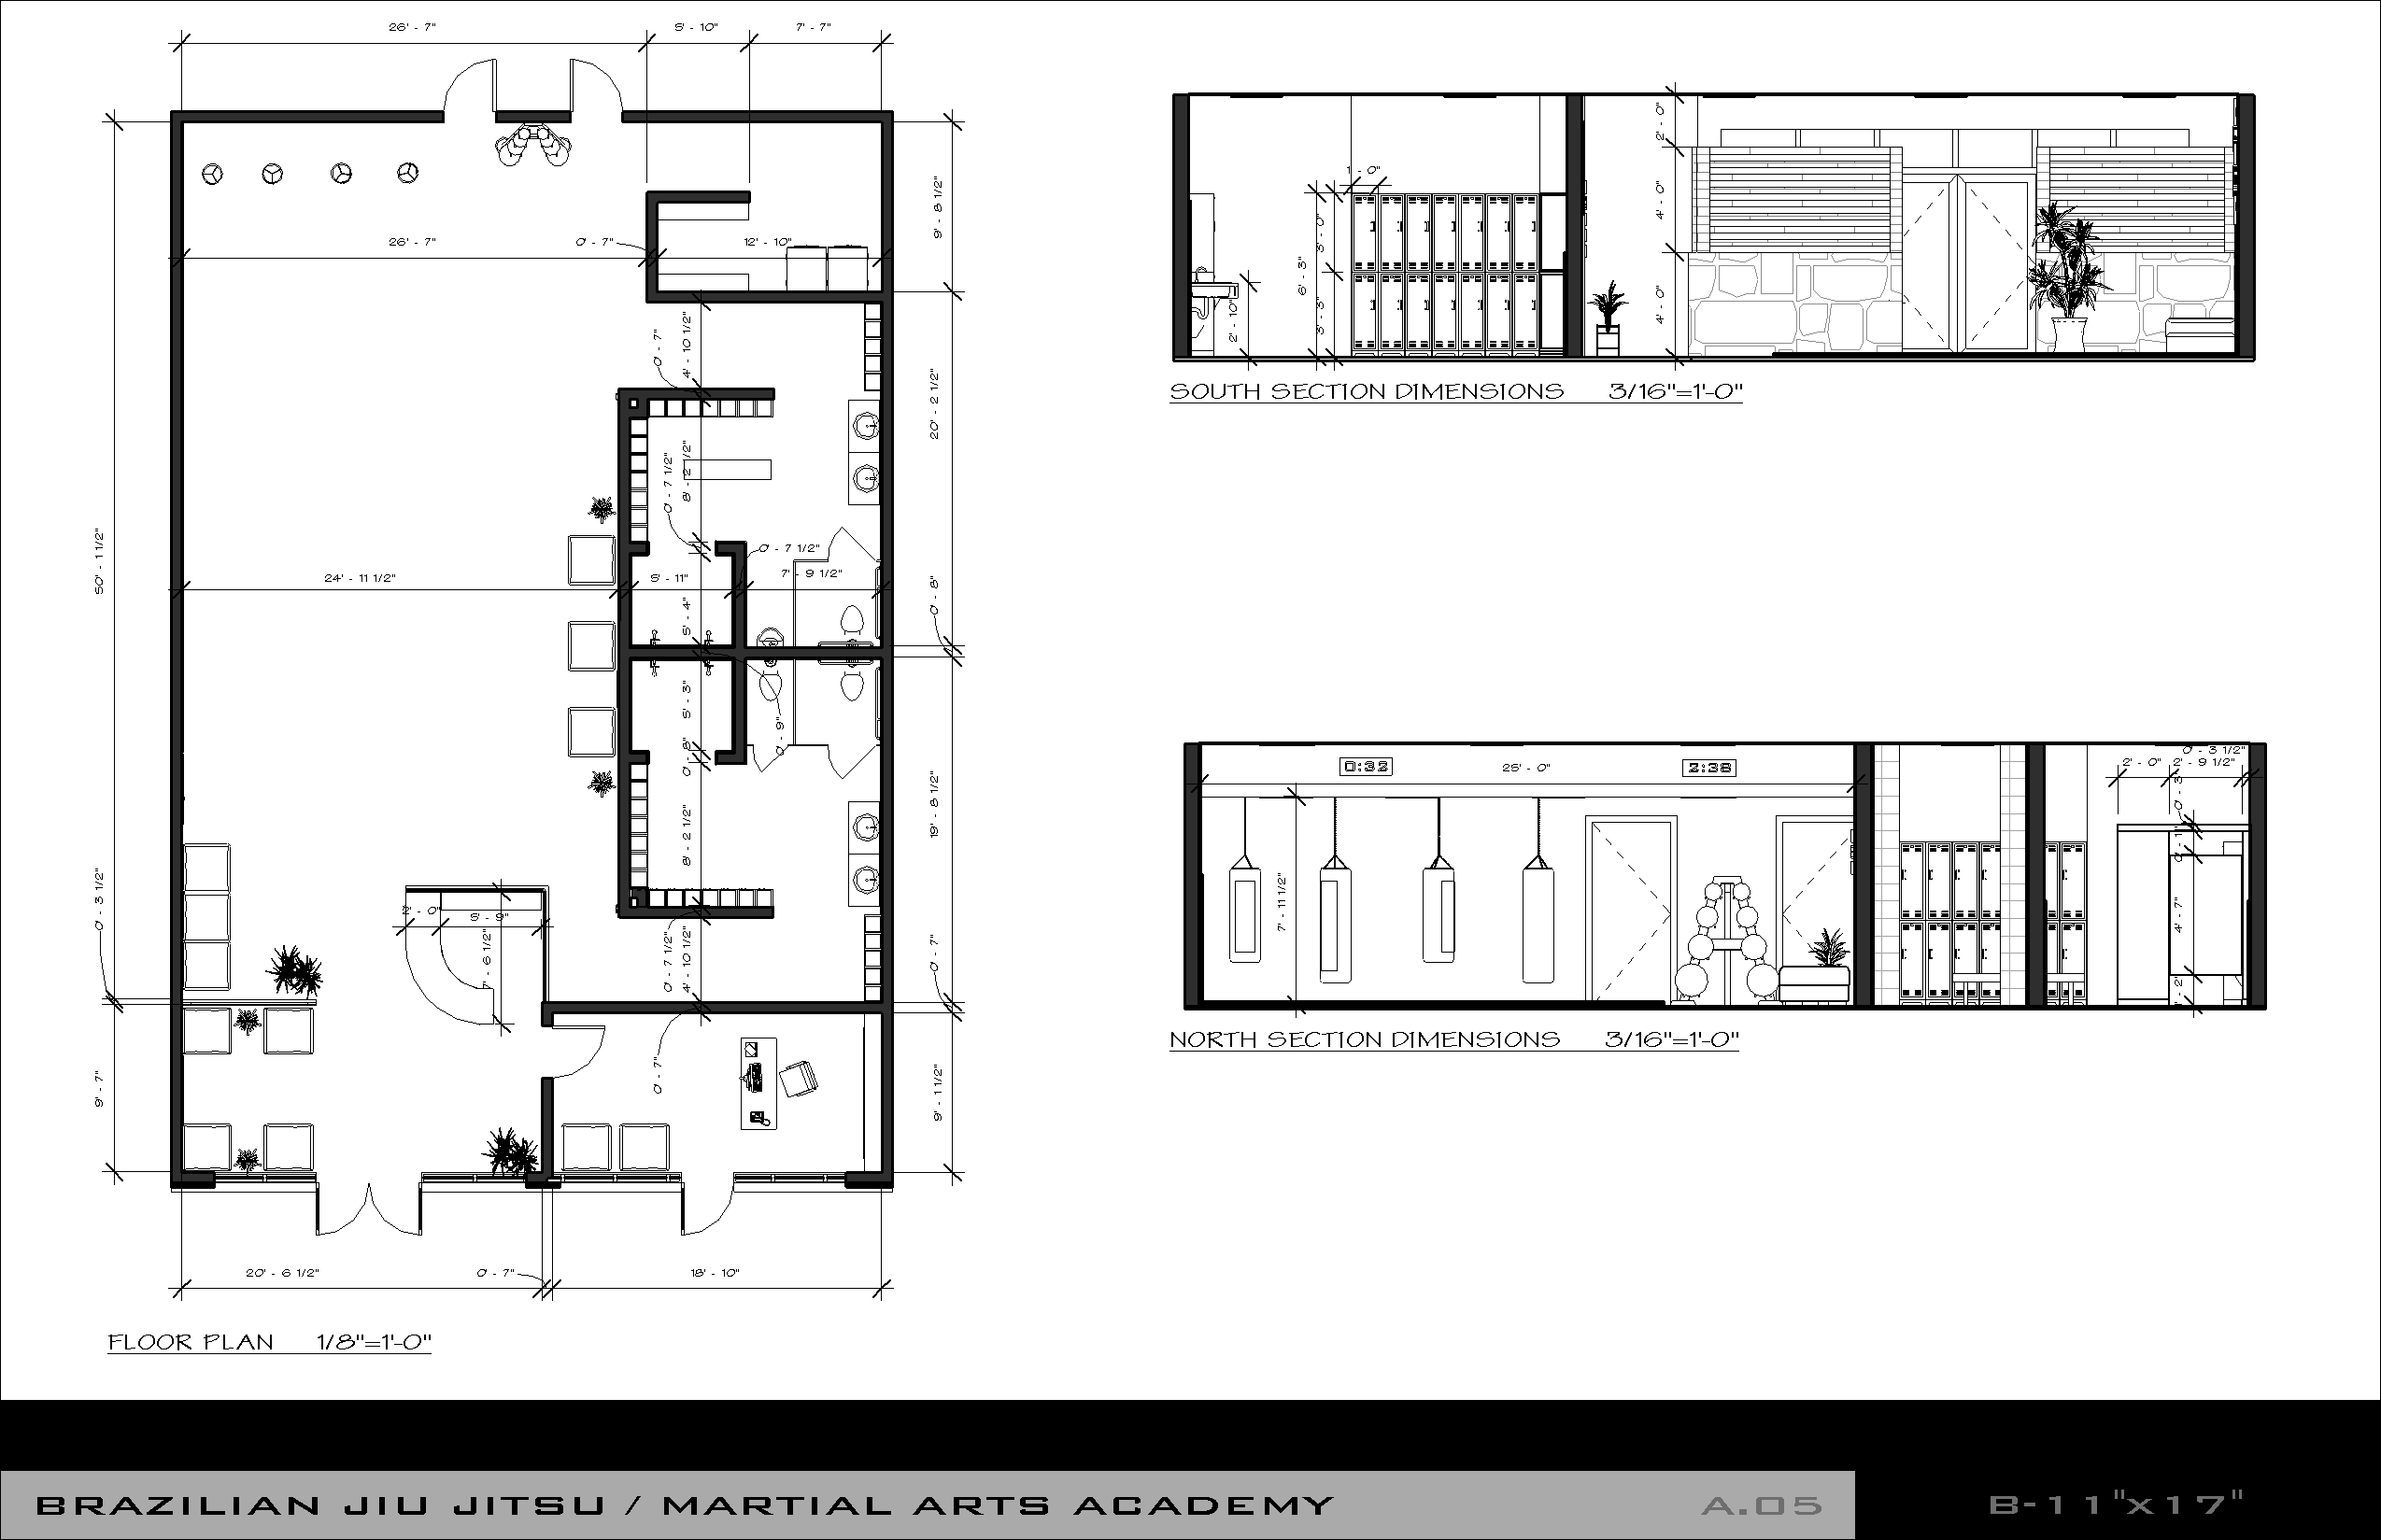 Floor plan ada bathroom dimensions on ada public bathroom floor plans - Sports Recreation Designed By Ken Howder Brazilian Jiu